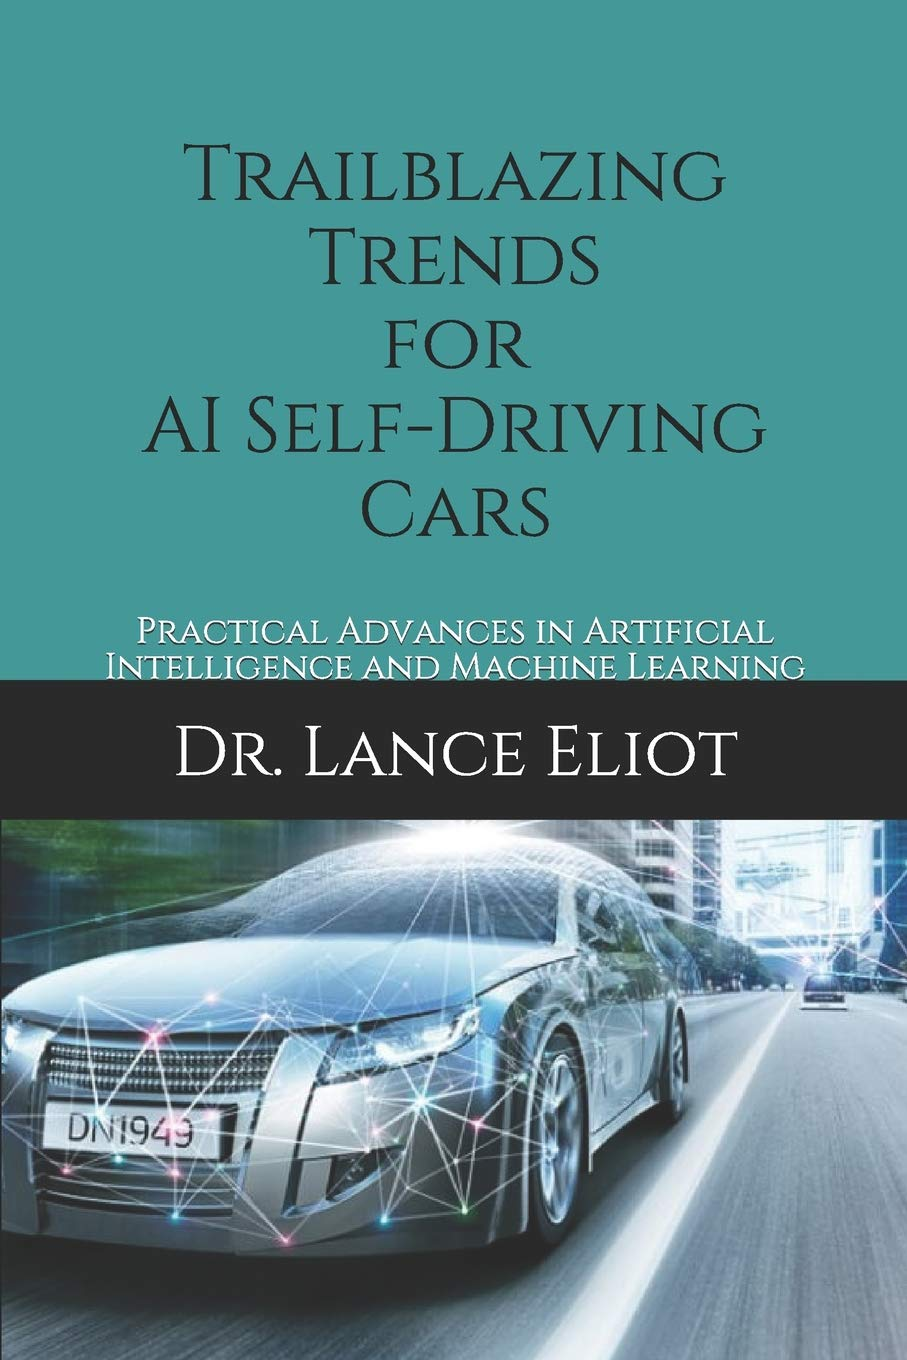 Trailblazing Trends for AI Self-Driving Cars: Practical